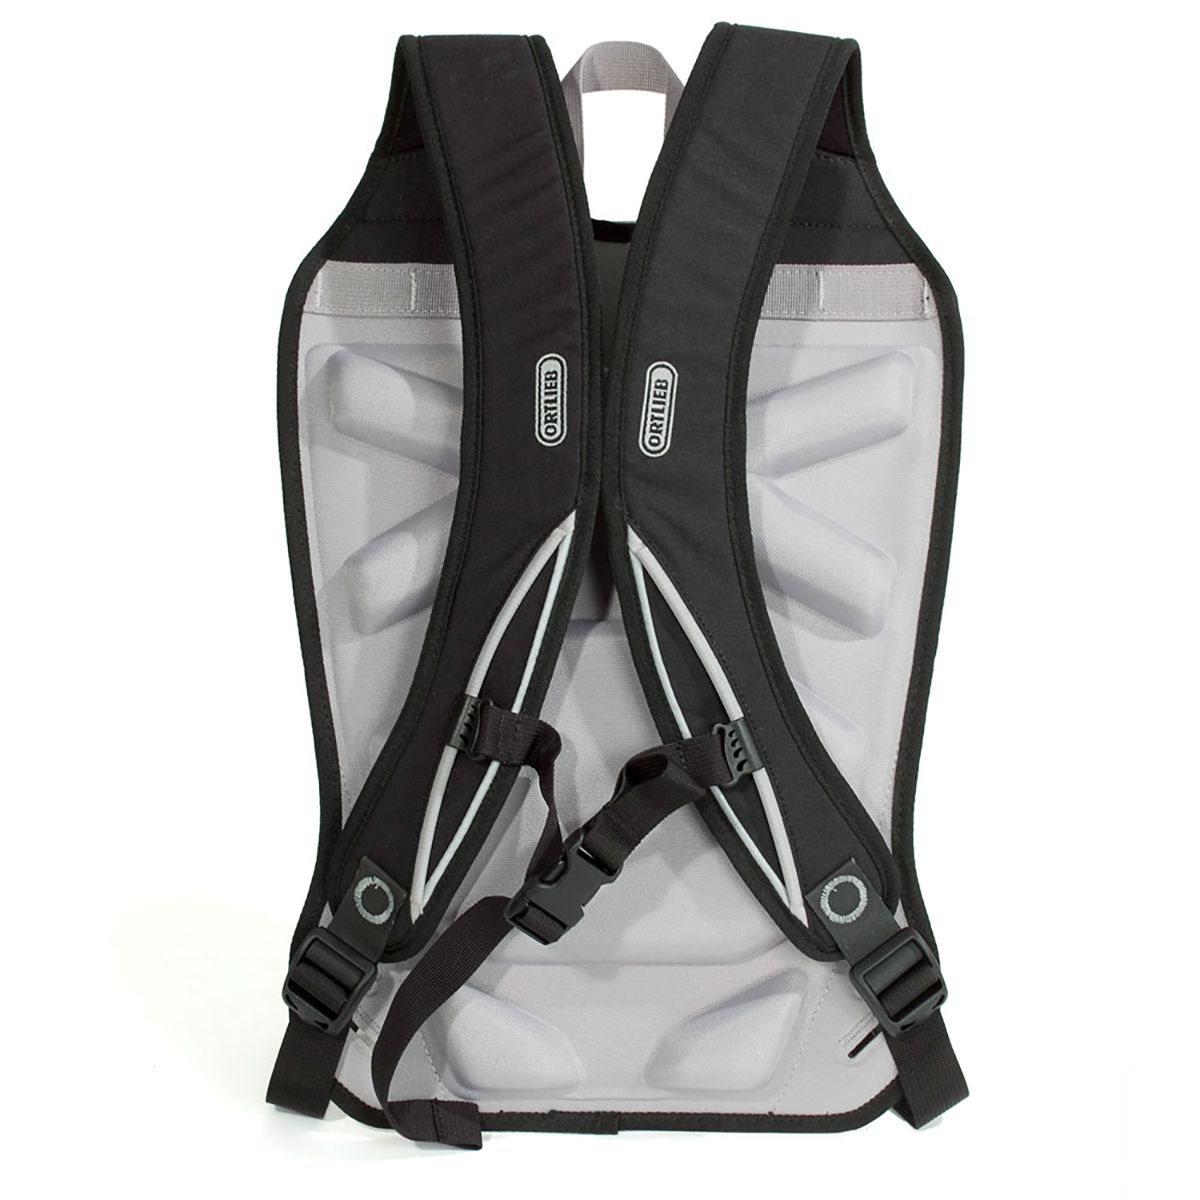 ORTLIEB carrying system for bike bags | item_misc